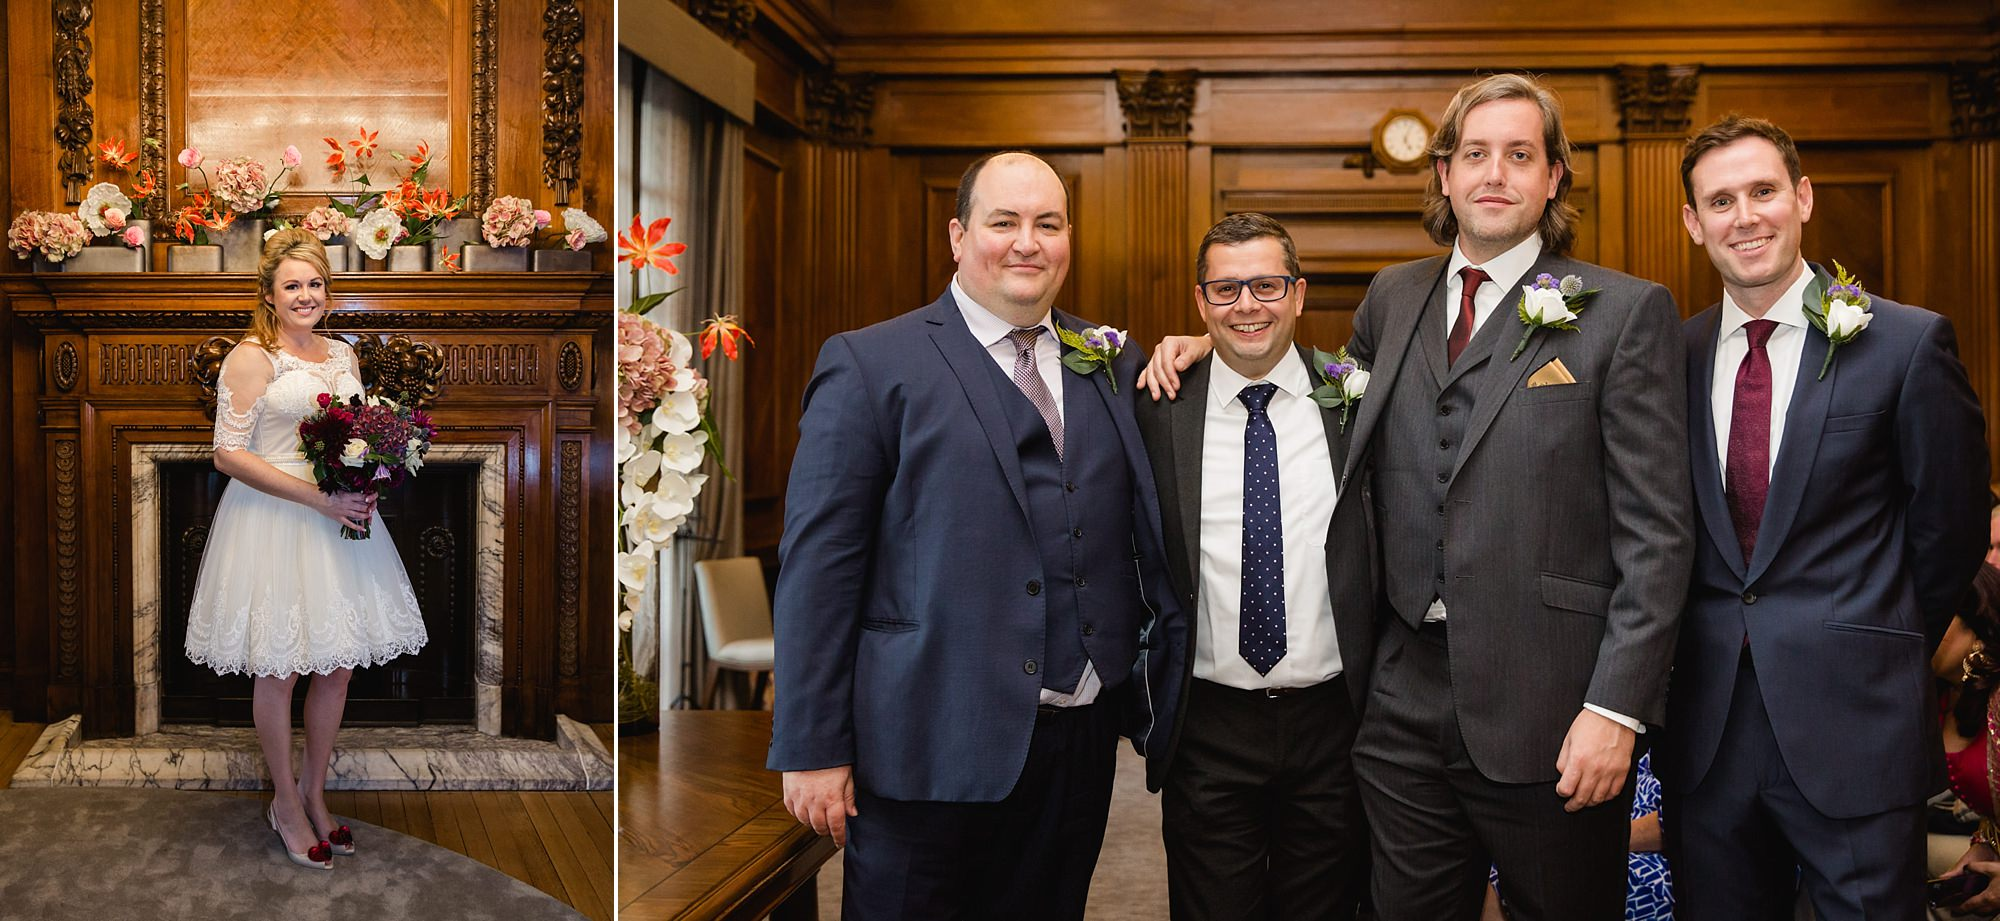 Old Marylebone Town Hall wedding photography portrait of bride and groomsmen